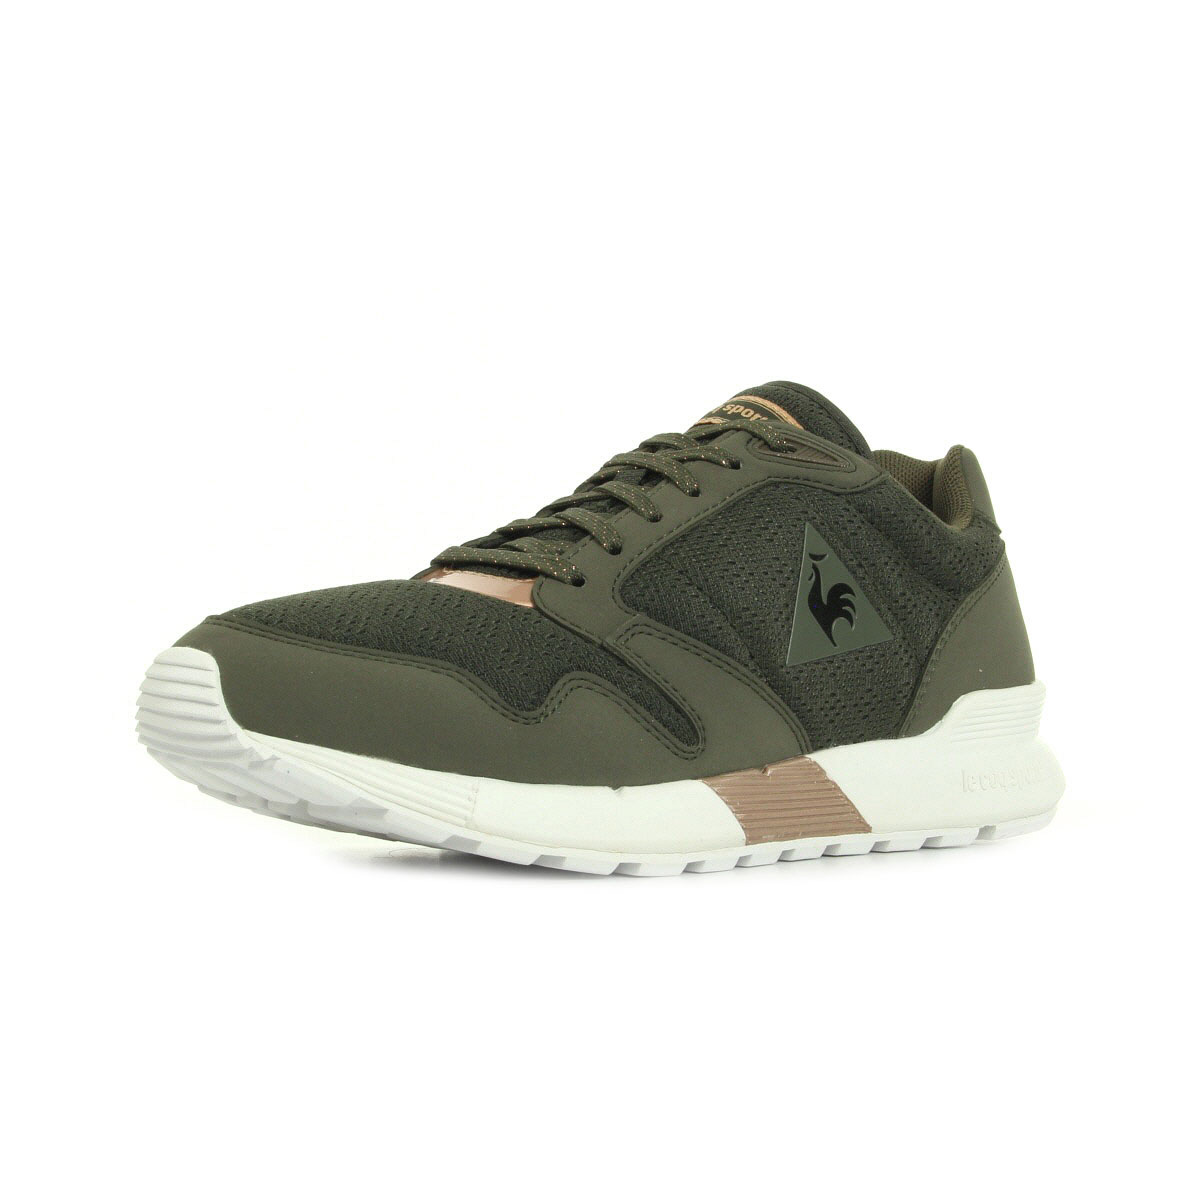 le coq sportif omega x w metallic olive night rose gold 1710748 chaussures homme homme. Black Bedroom Furniture Sets. Home Design Ideas